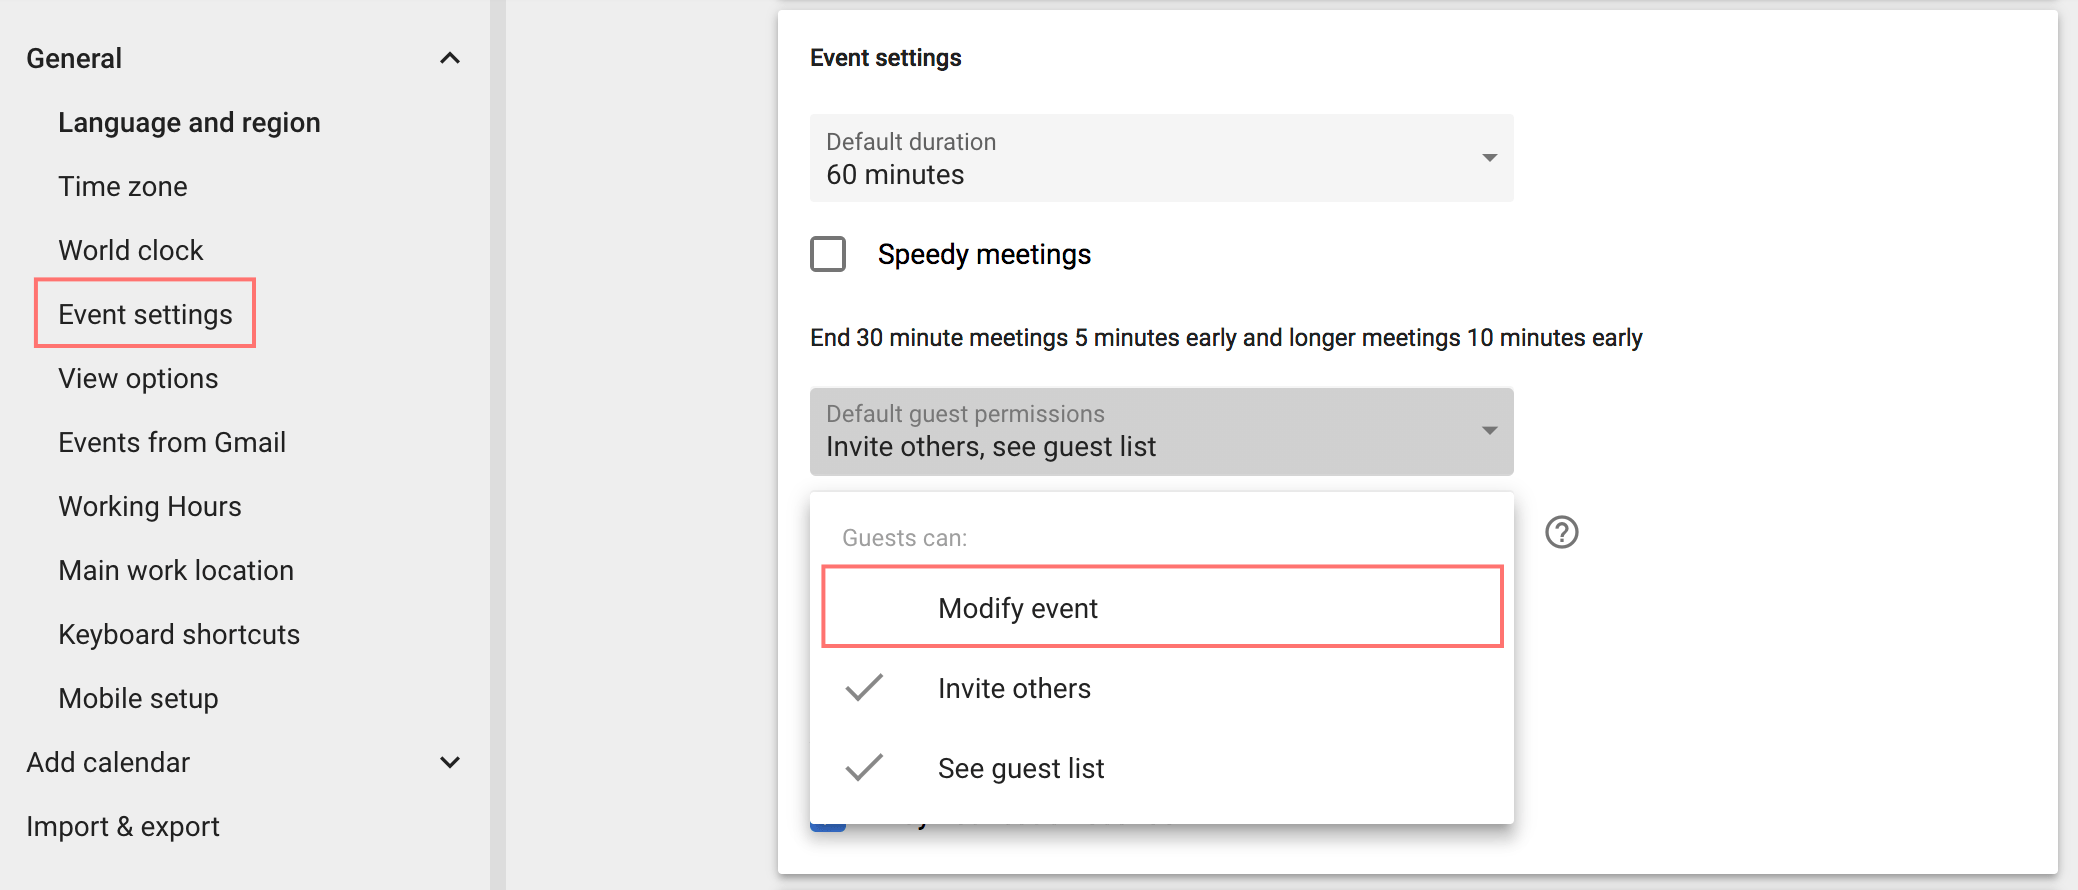 Google Calendar - Guests can modify events setting